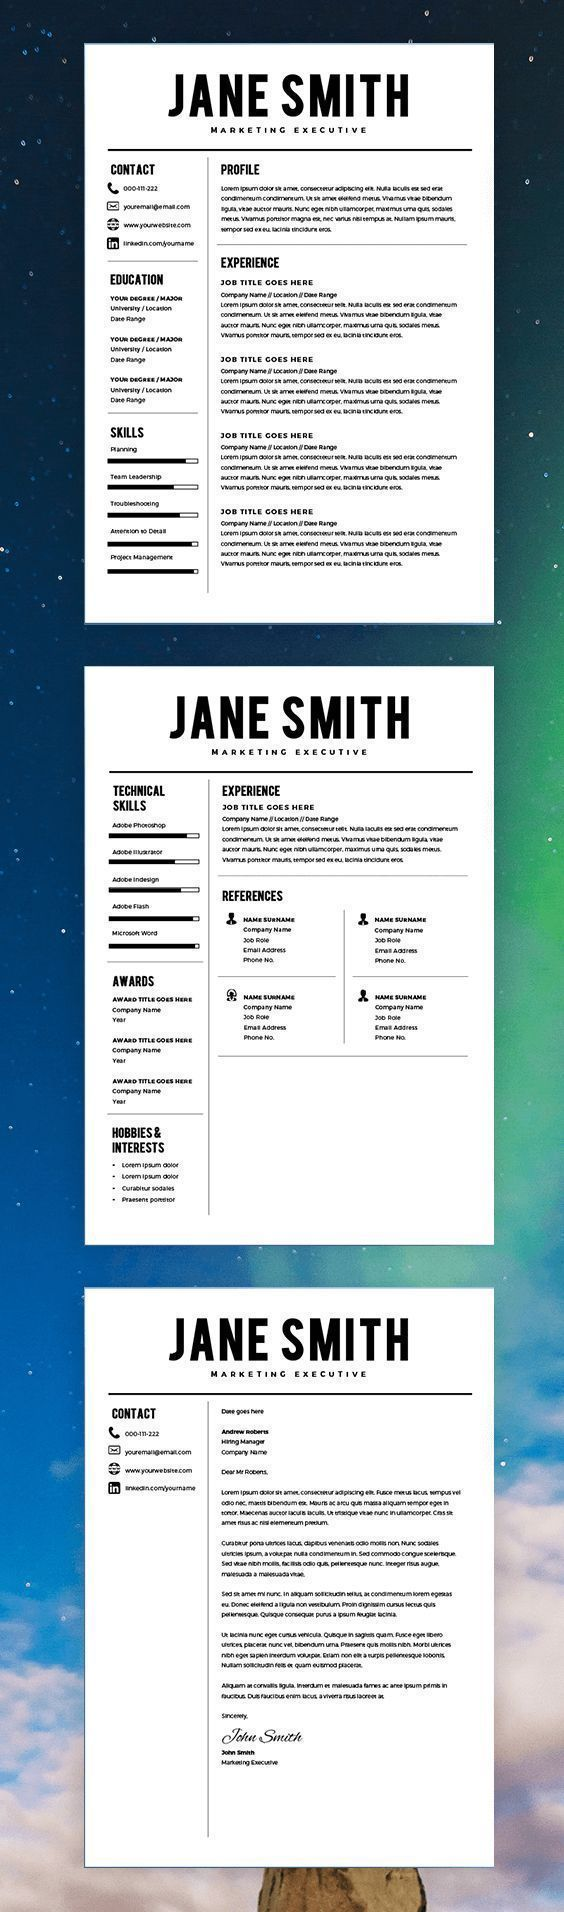 Best Resume Template - CV Template + Cover Letter - MS Word on Mac ...